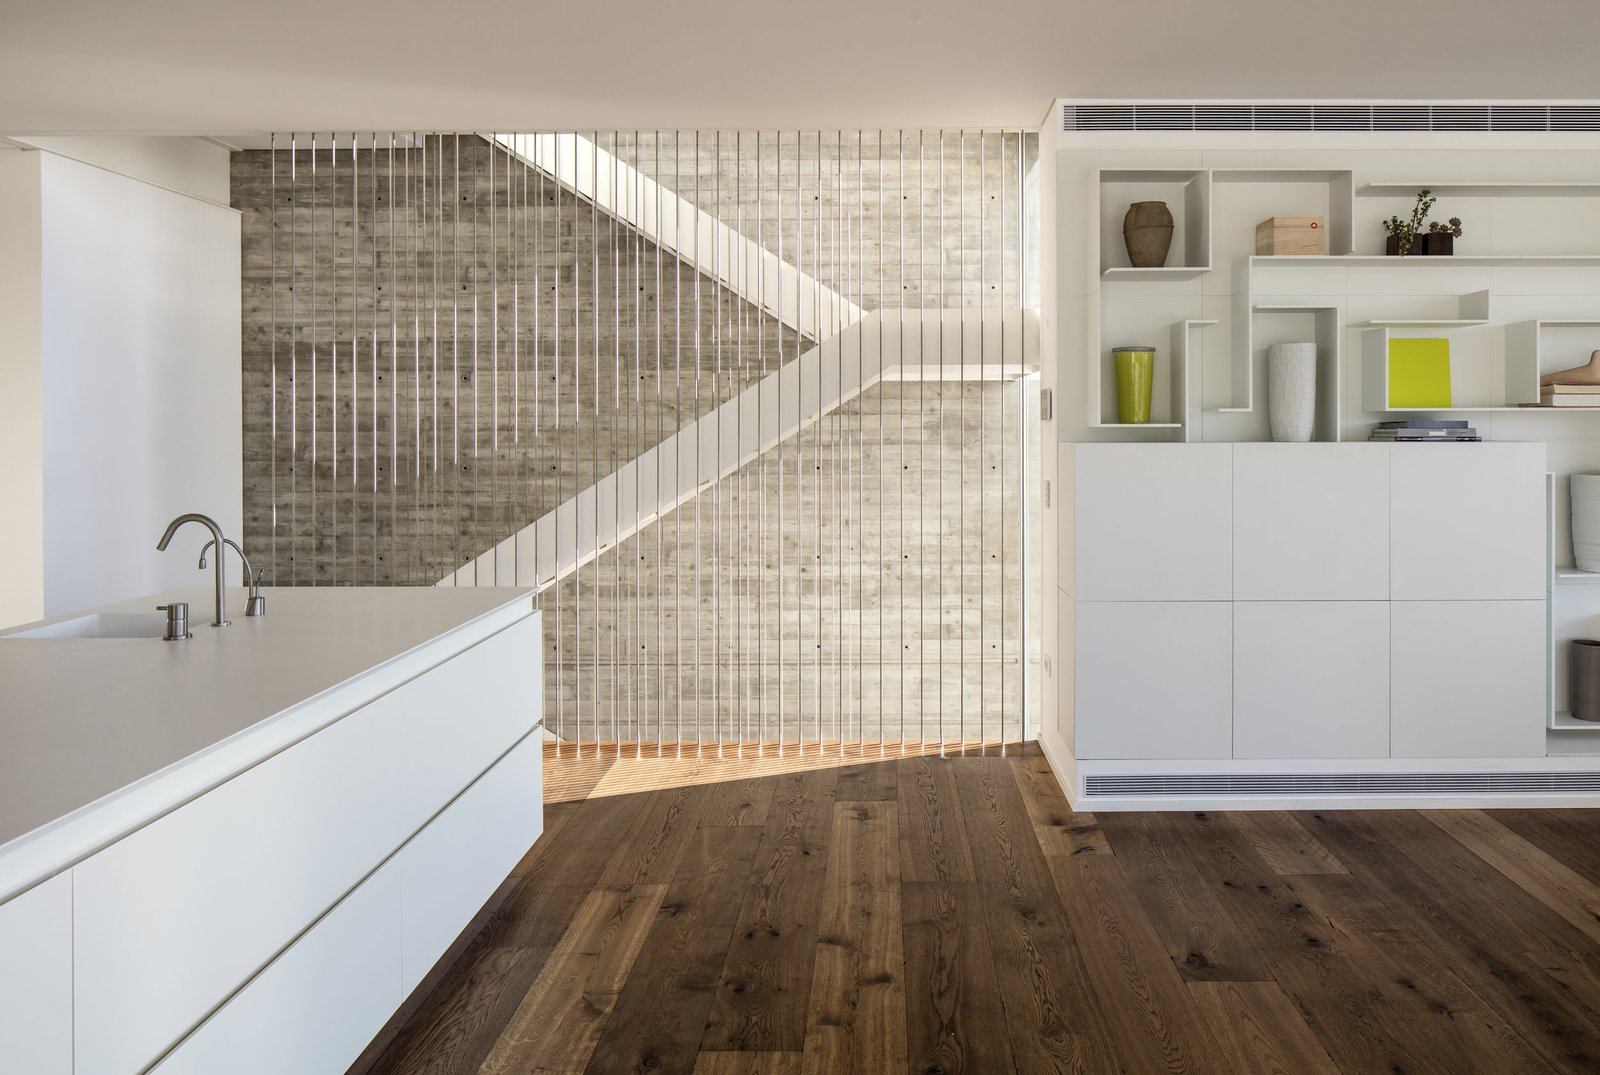 The staircase goes through the center of the house, pictured here adjacent to the open plan kitchen/living area.  The Dual House by Axelrod Architects